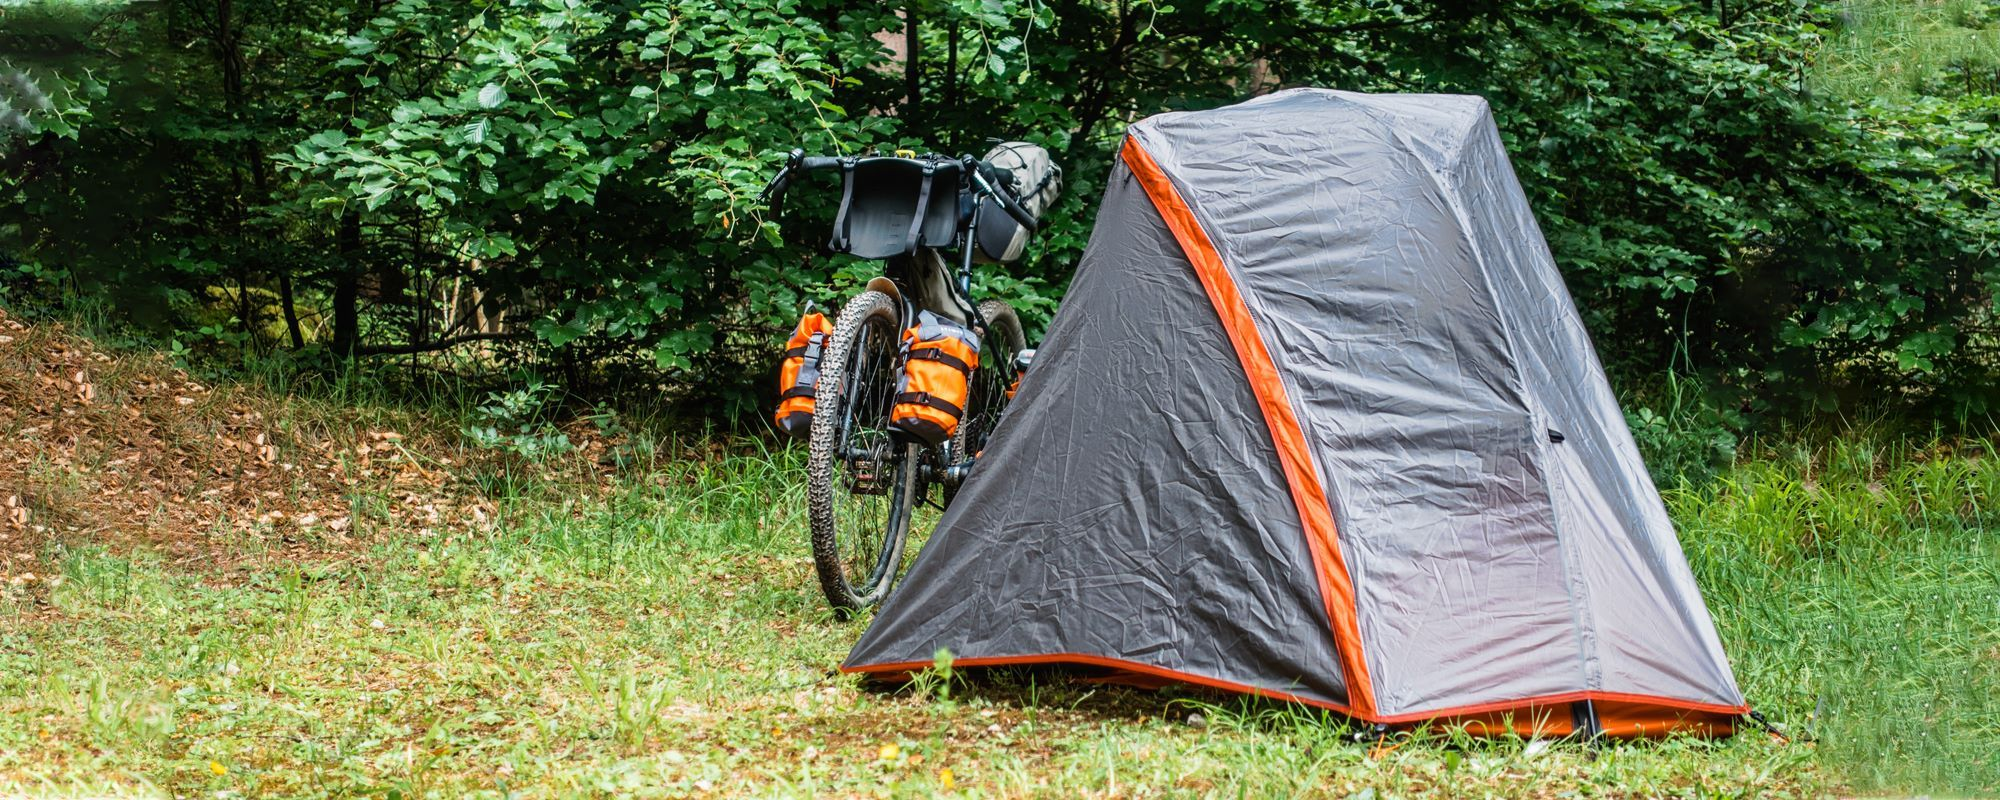 Trekking tent Forclaz Trek 900 Test & Experiences - Does the Ultralight tent prove itself on the Bikepacking Trans Germany?